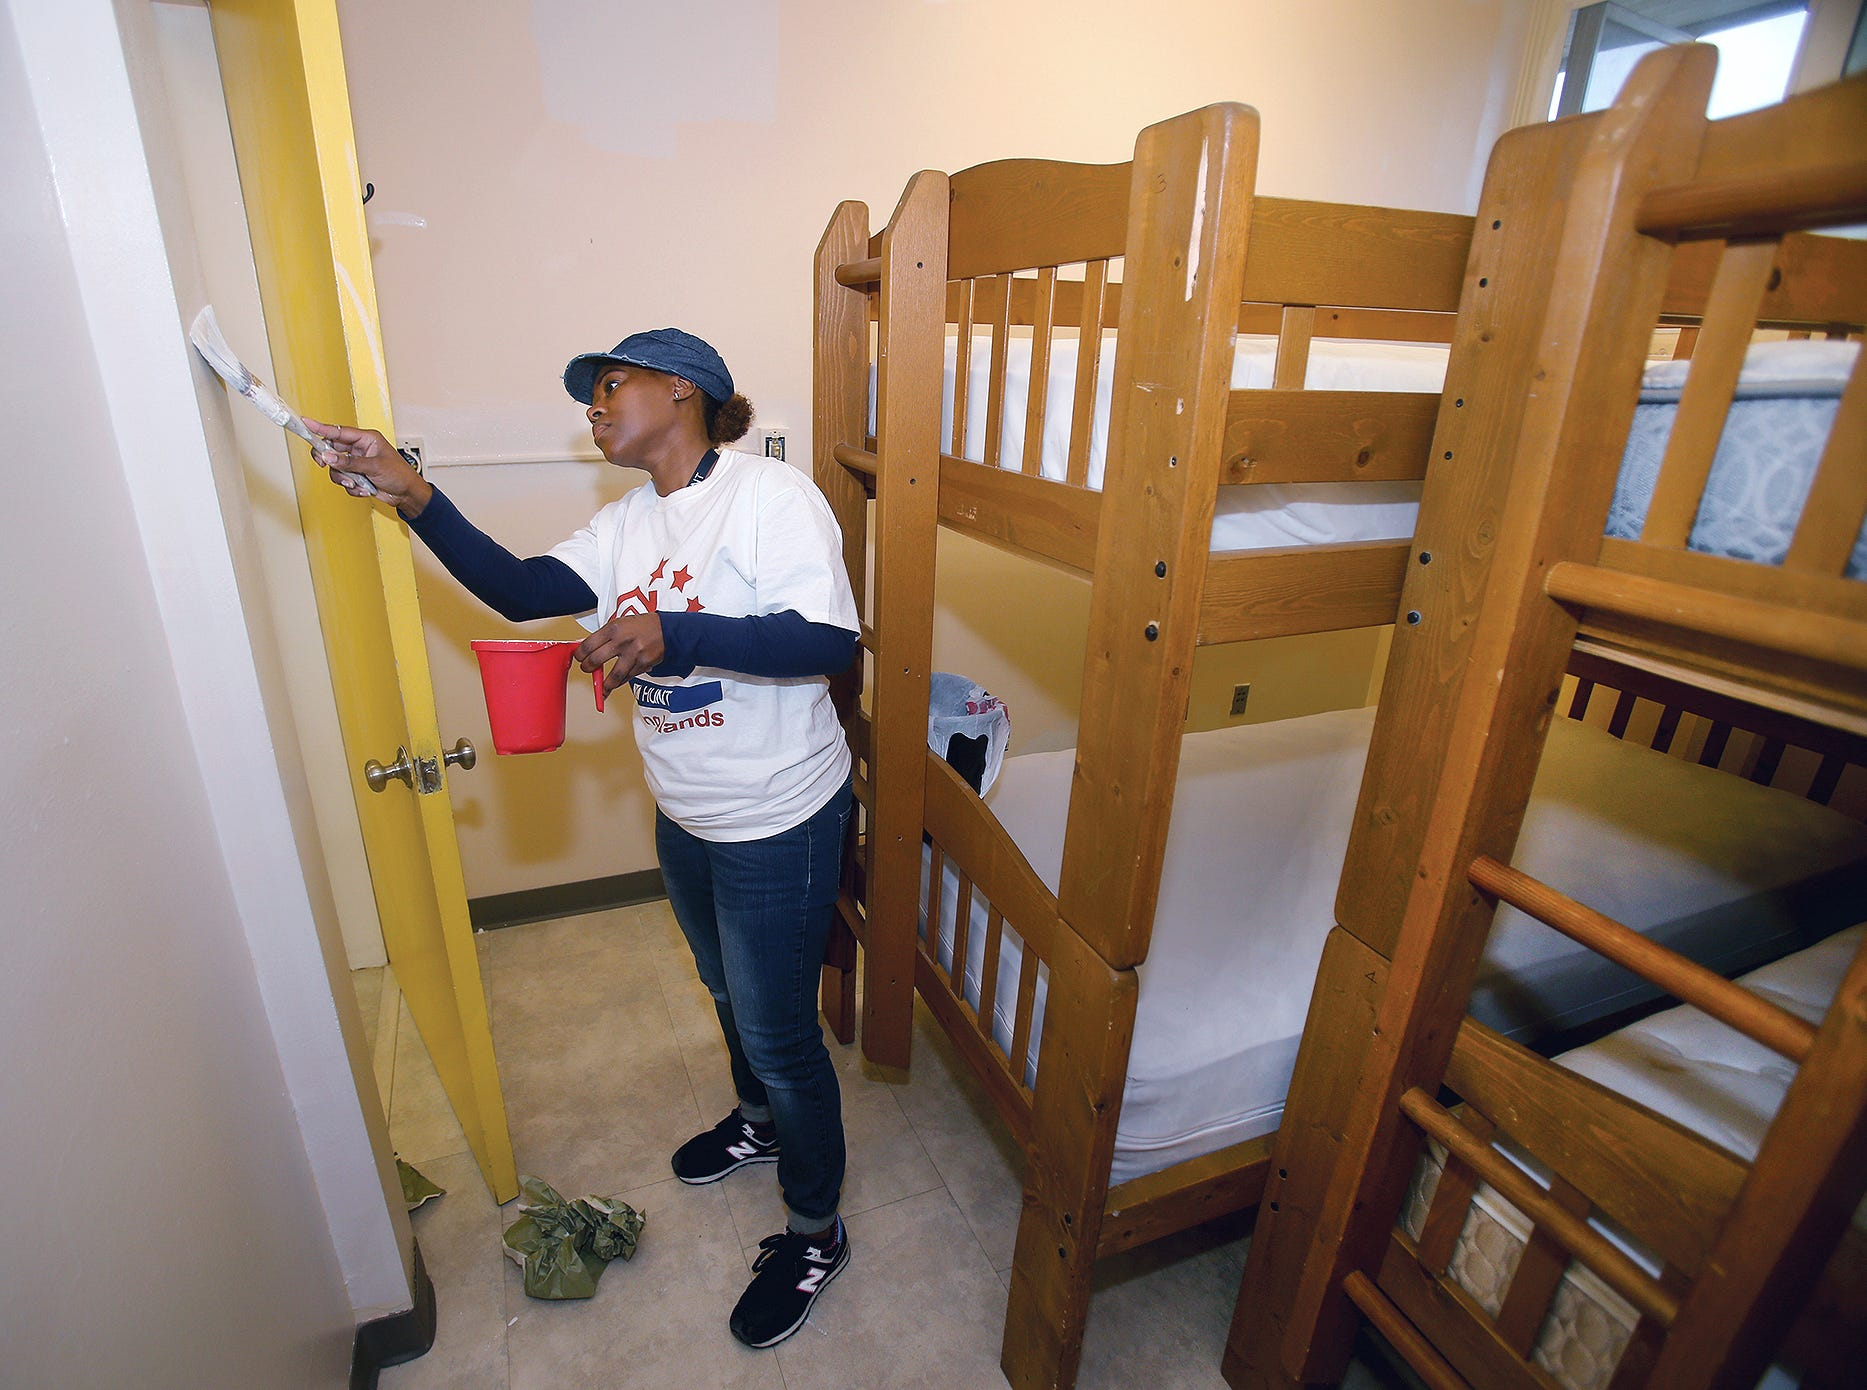 Myseha Mosley paints one the Georgia's House women's shelter rooms on Wednesday, October, 24, 2018.The shelter that helps homeless women and domestic violence victims reclaim stability. The shelter relocated its residents this month due to a bed bug scare and is taking the opportunity to complete renovations. A team ofvolunteers from Hunt Maintenance at Bangor, helped.